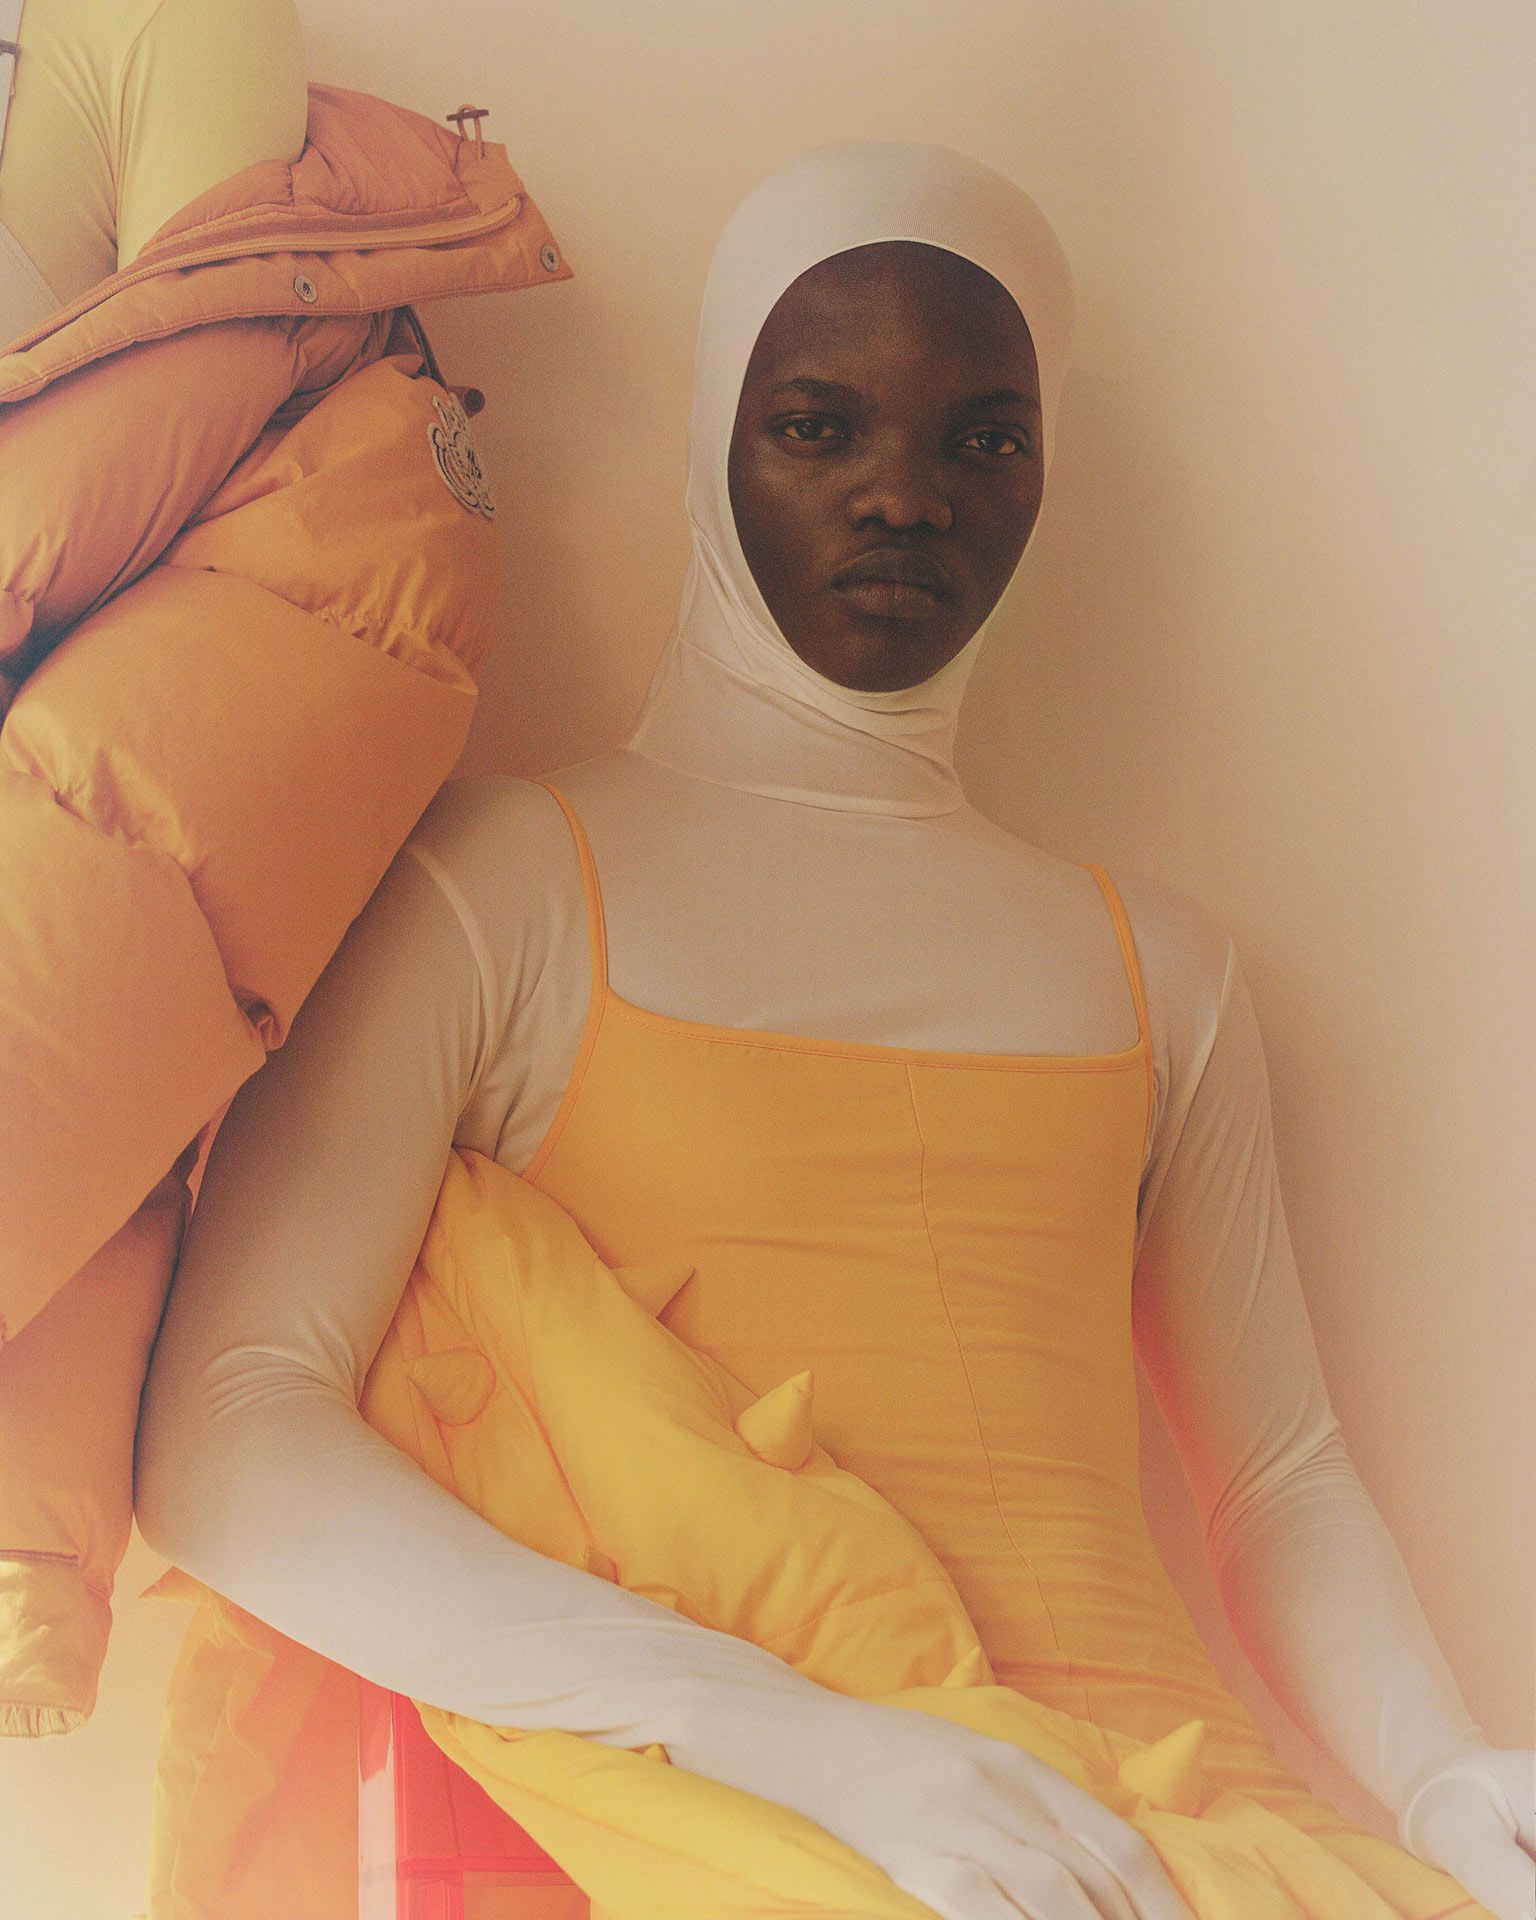 black model sitting on chair looking at camera wearing white bodysuit with a yellow spaghetti stripes top on top photographed by Oumayma B Tanfous for Moncler as a story for Document Journal magazine